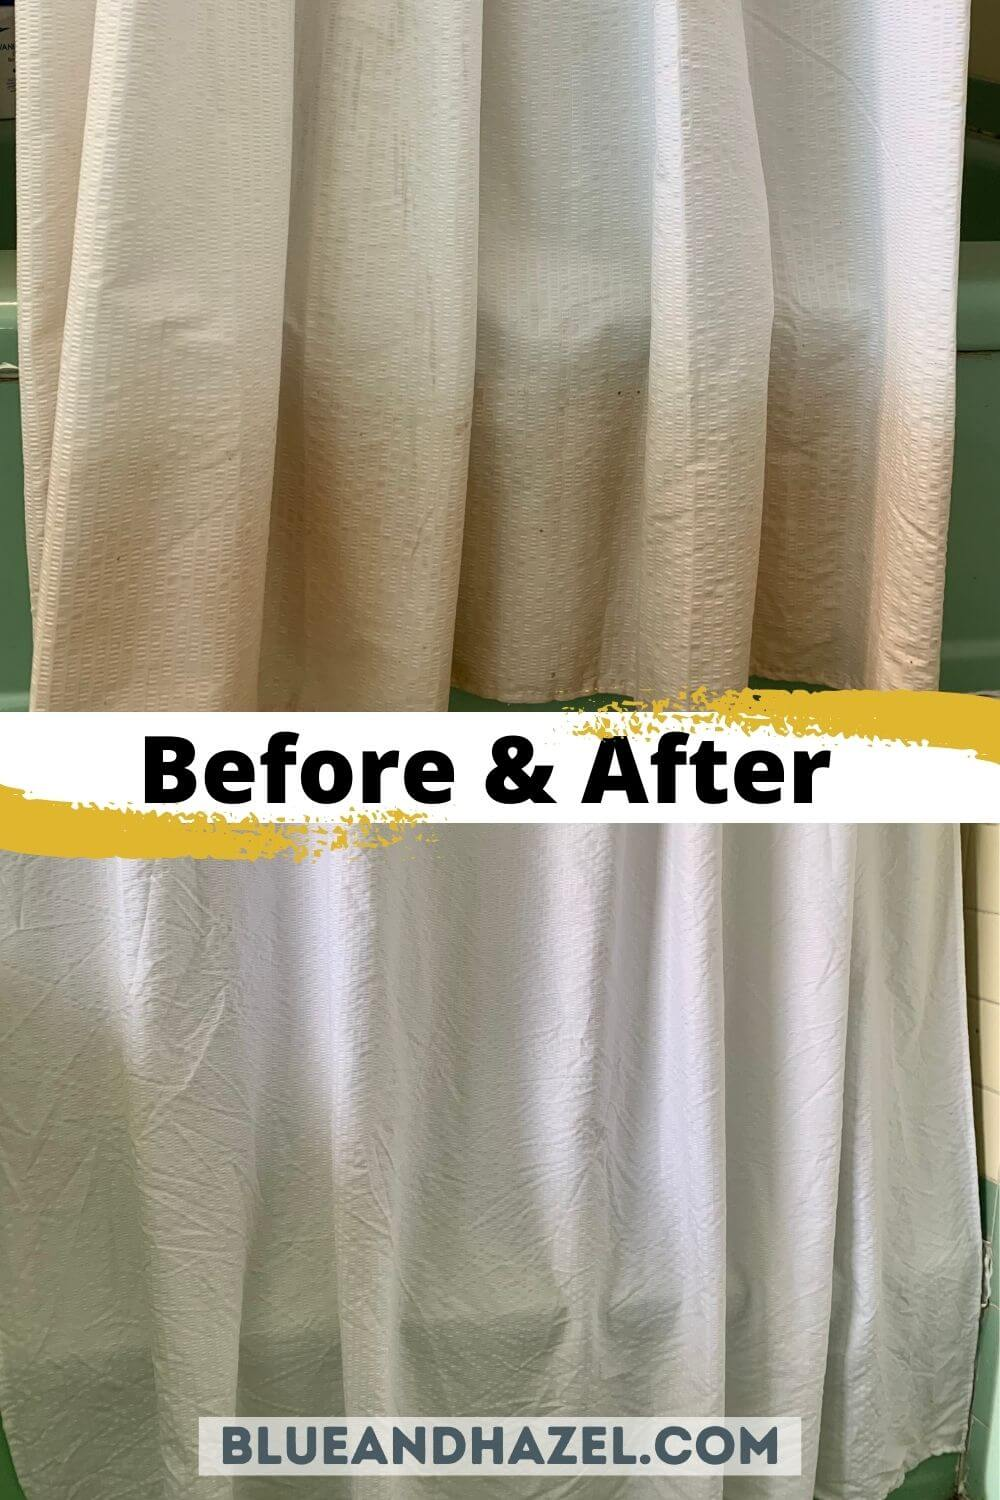 A stained shower curtain before and after soaking with branch basics oxygen boost and concentrate in a hot wash cycle.